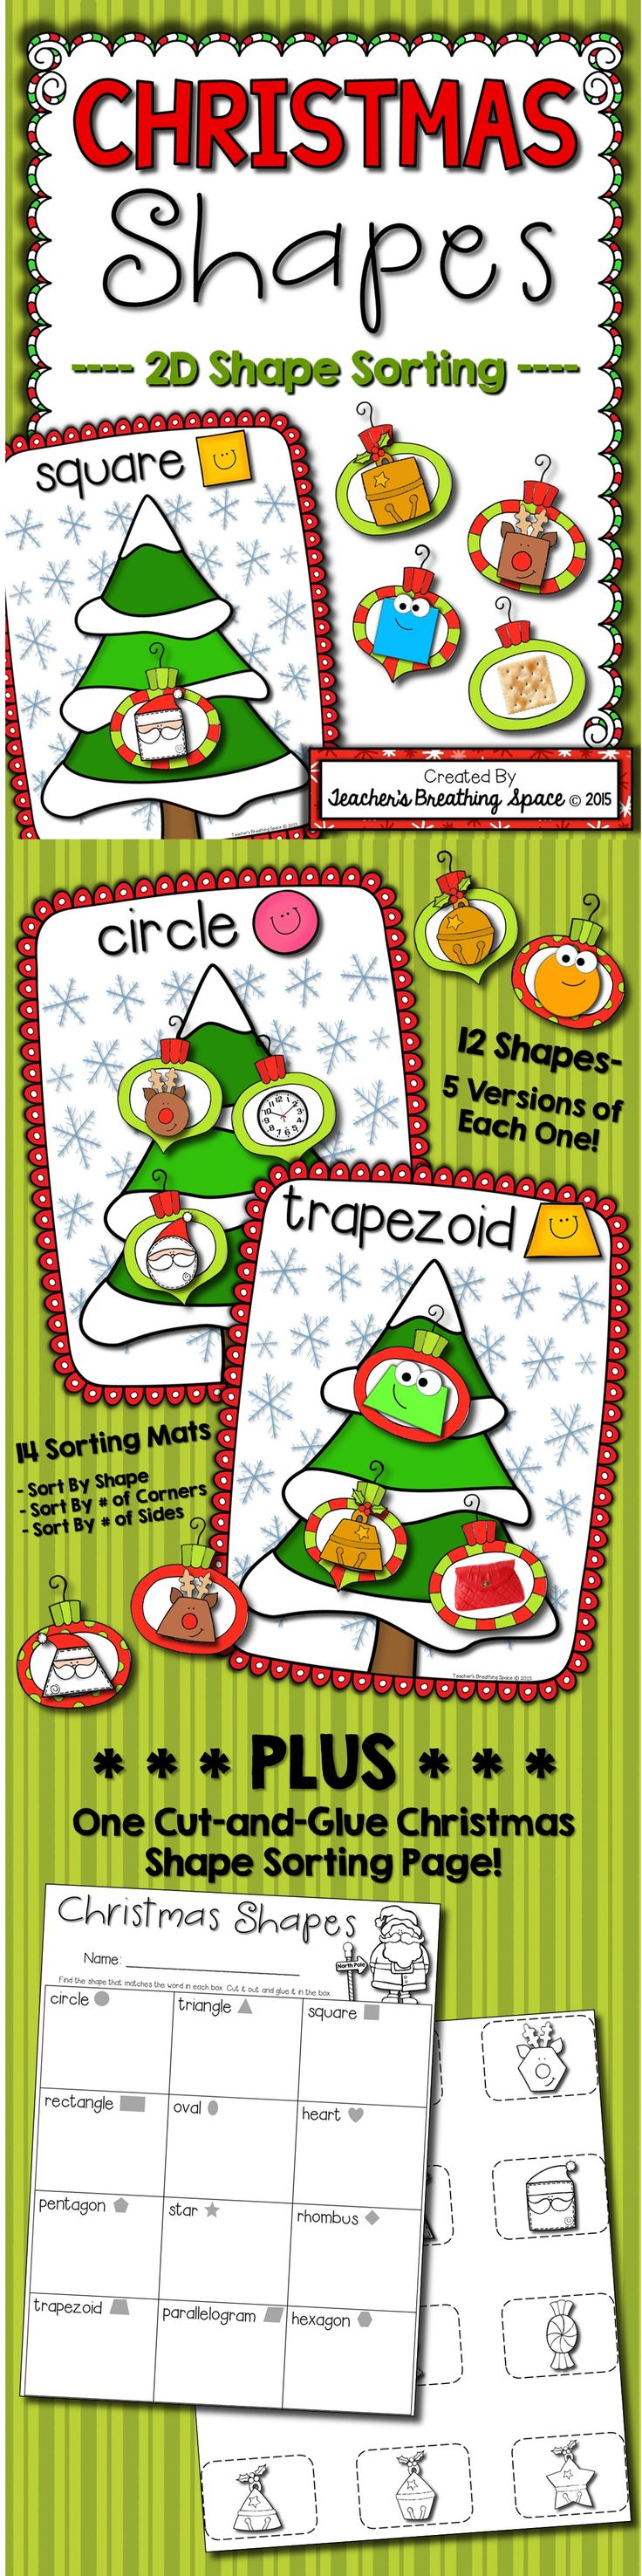 Christmas Shape Sorting --- Sorting 2D Plane Shapes! This set includes a Christmas-themed shape sorting math center (circles, squares, triangles, rectangles, ovals, hearts, stars, pentagons, hexagons, parallelograms, trapezoids and rhombuses) and one cut-and-glue practice page.